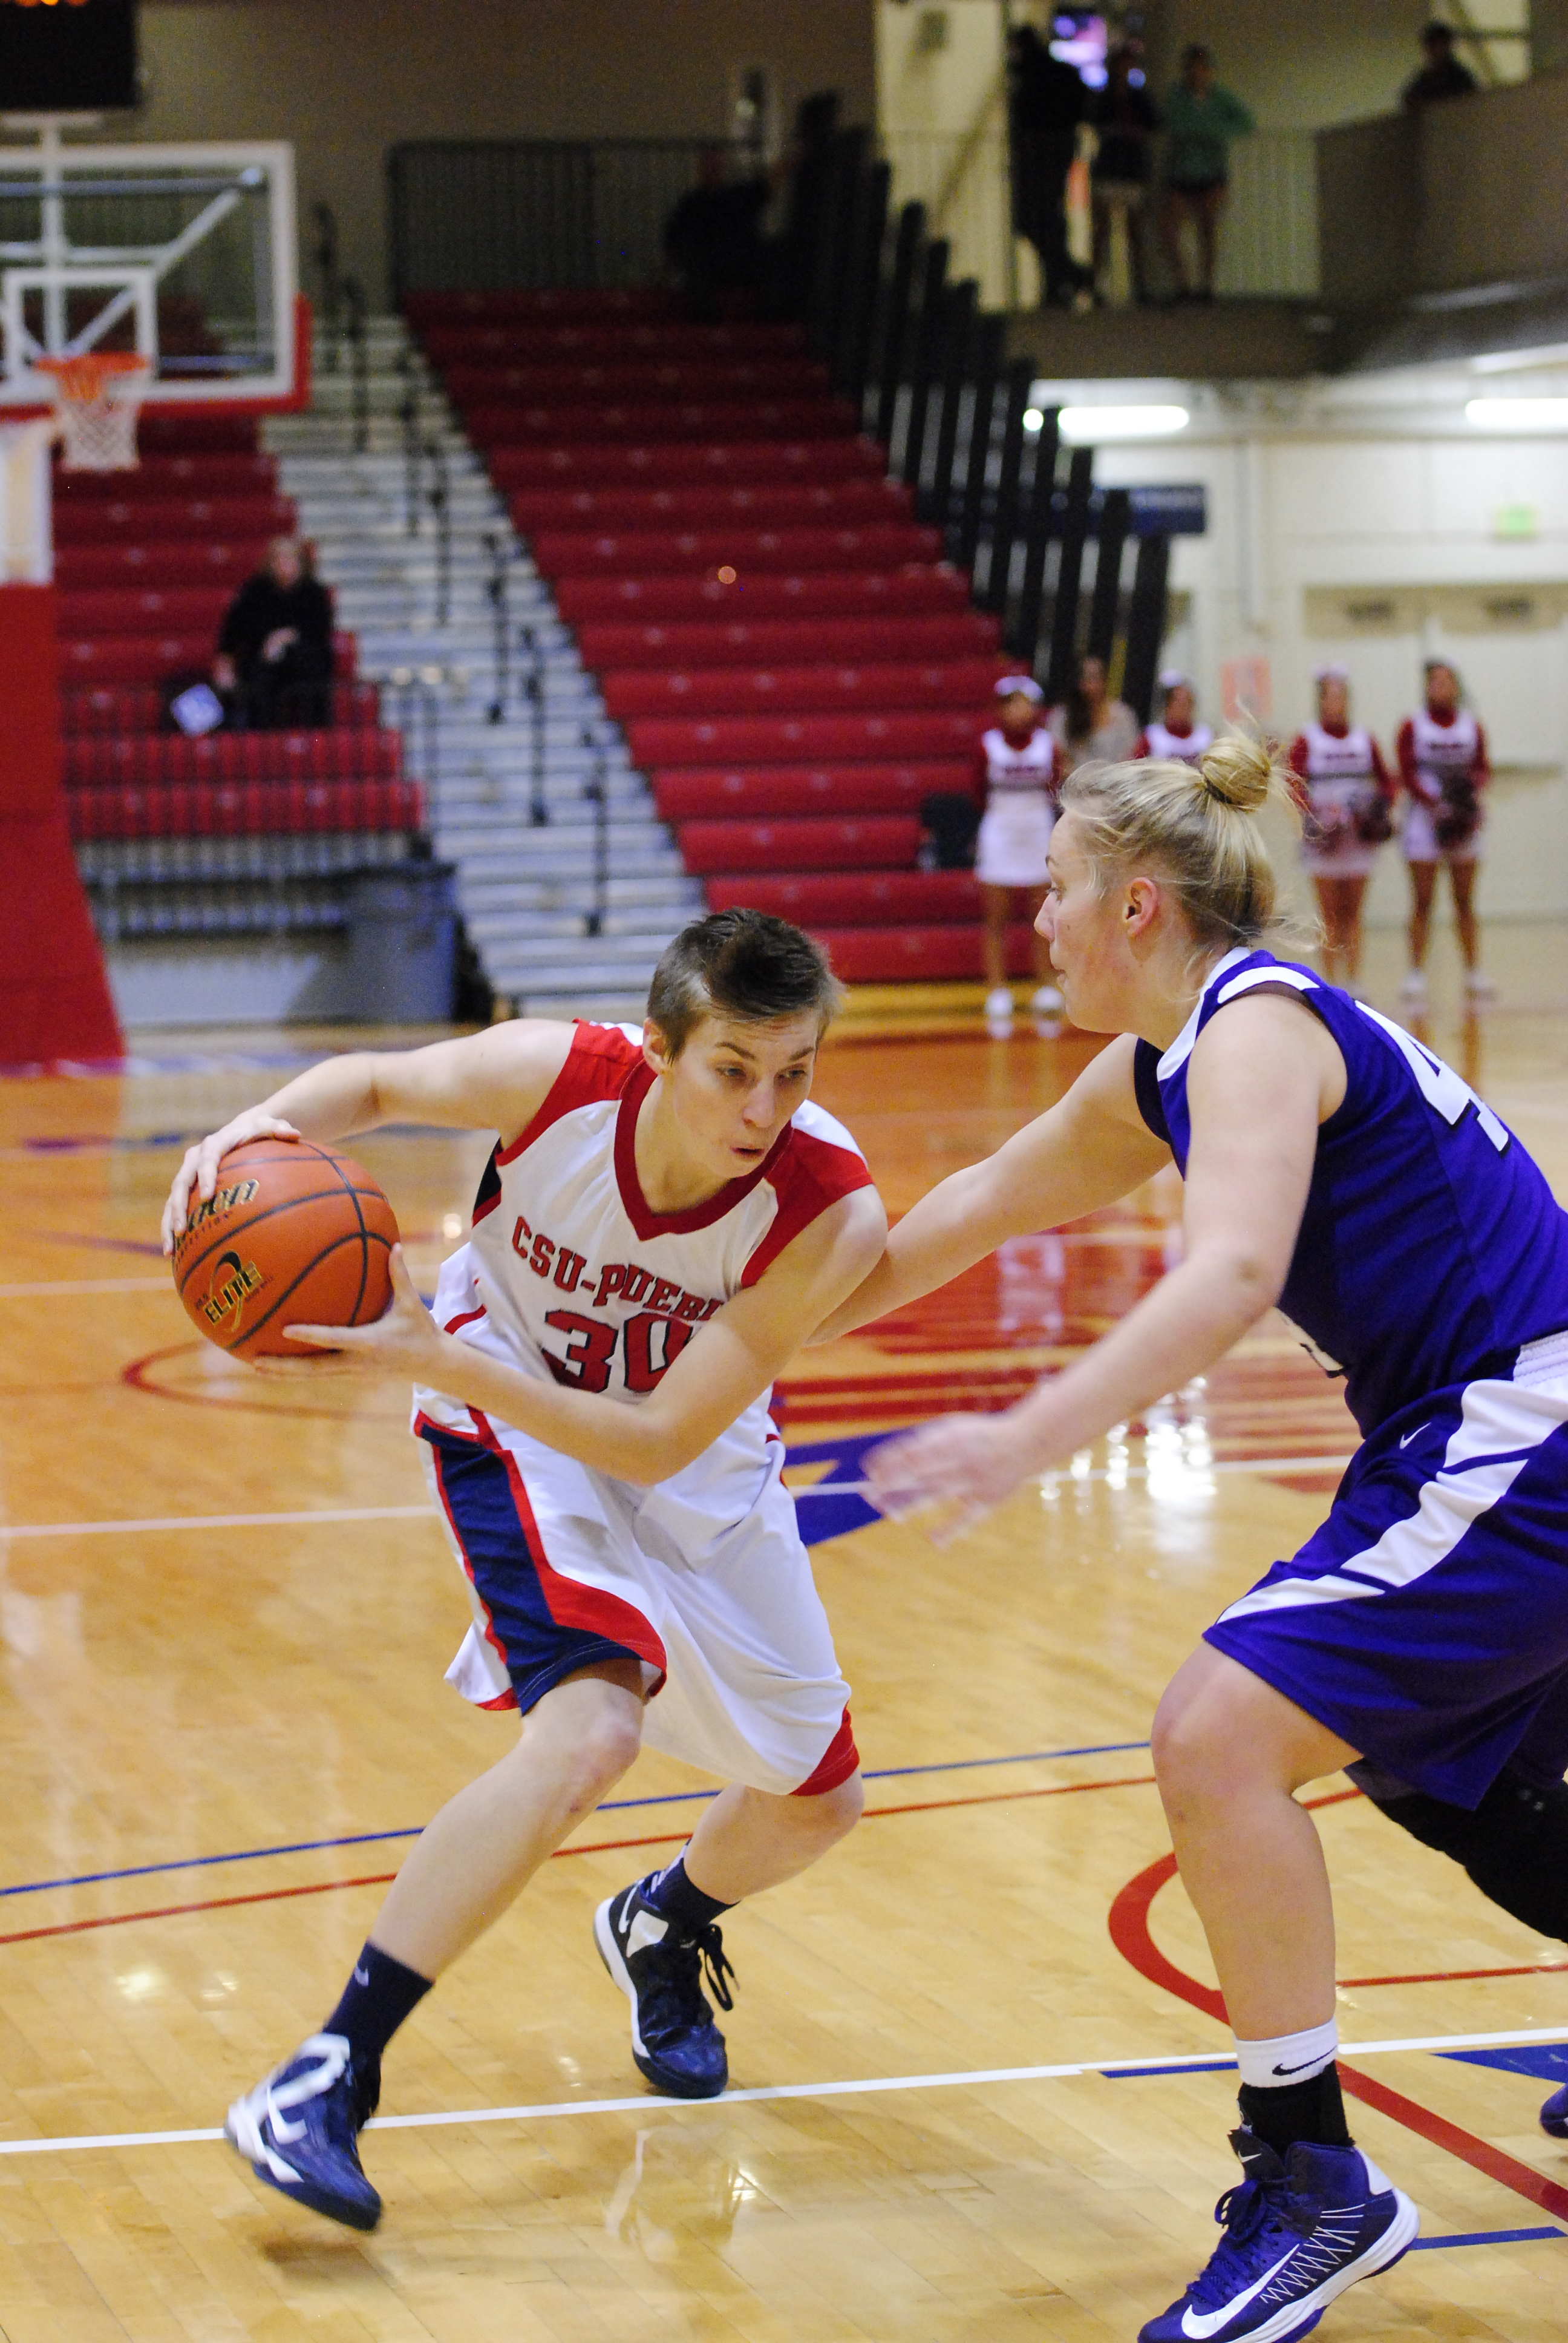 Laurel Kearsley drives to the basket to extend the Thunderwolves lead. Photo courtesy of Tyler Shomaker